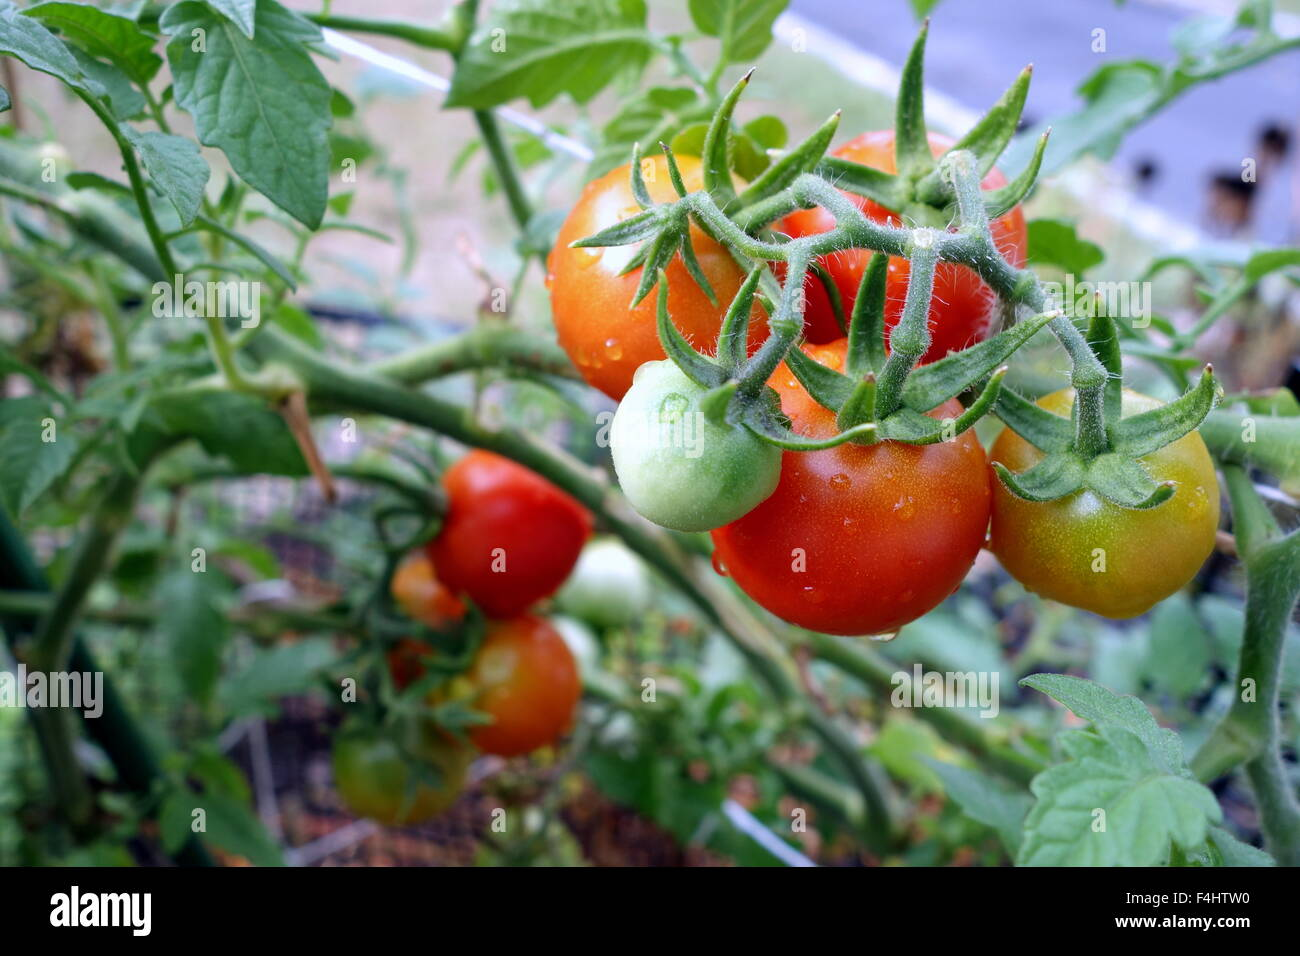 Growing Tomatoes In The Home Garden Stock Photo 88903164 Alamy